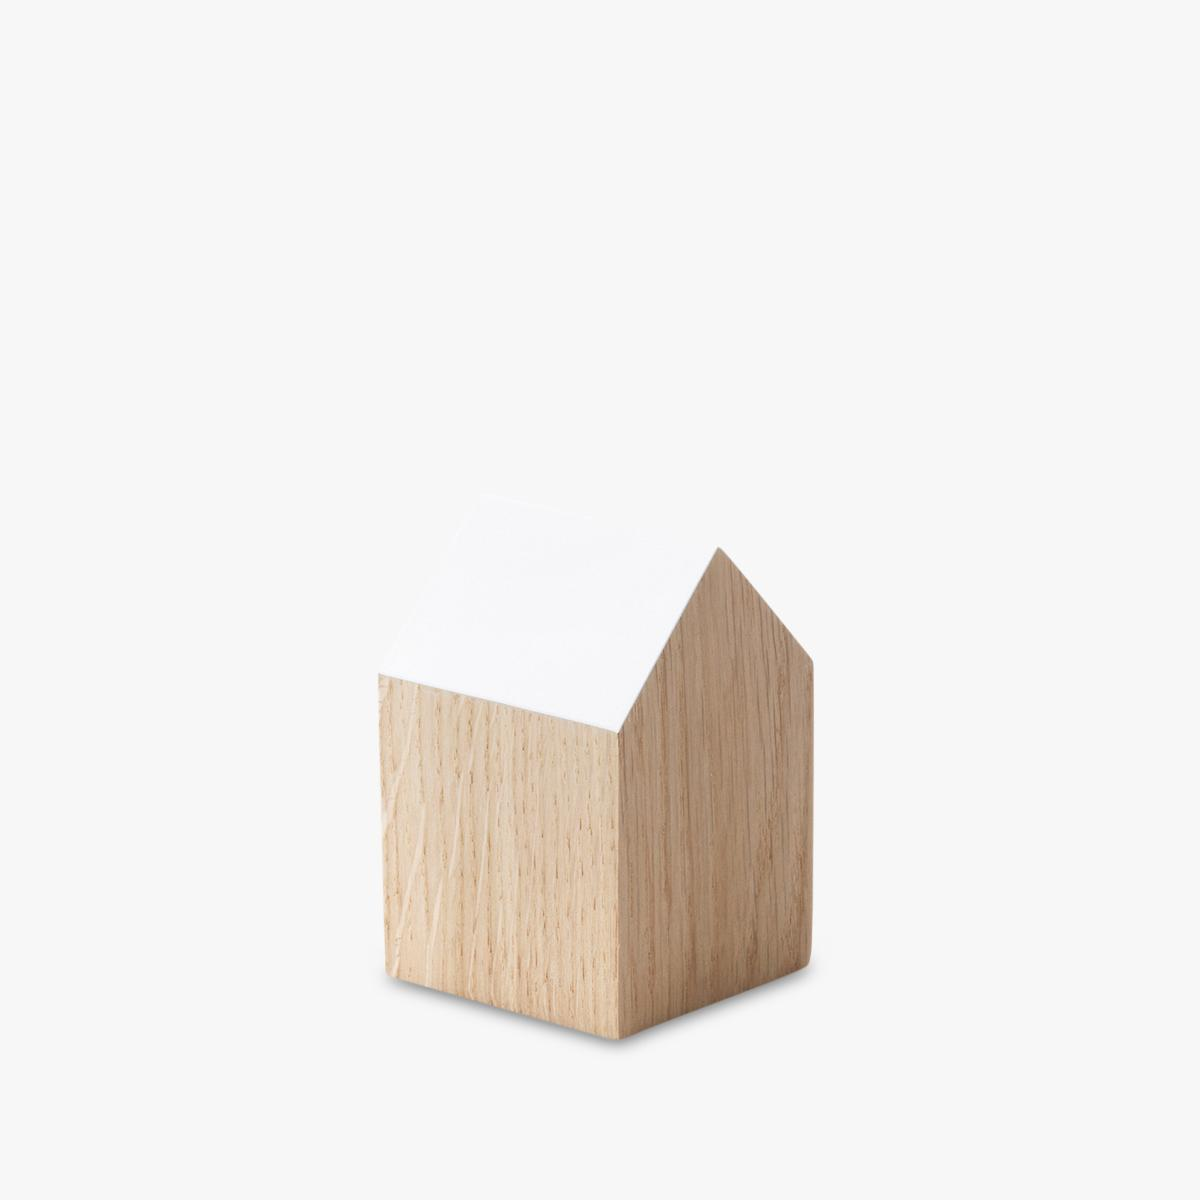 Applicata-Arch-You-Oak-White-House-Small-1200